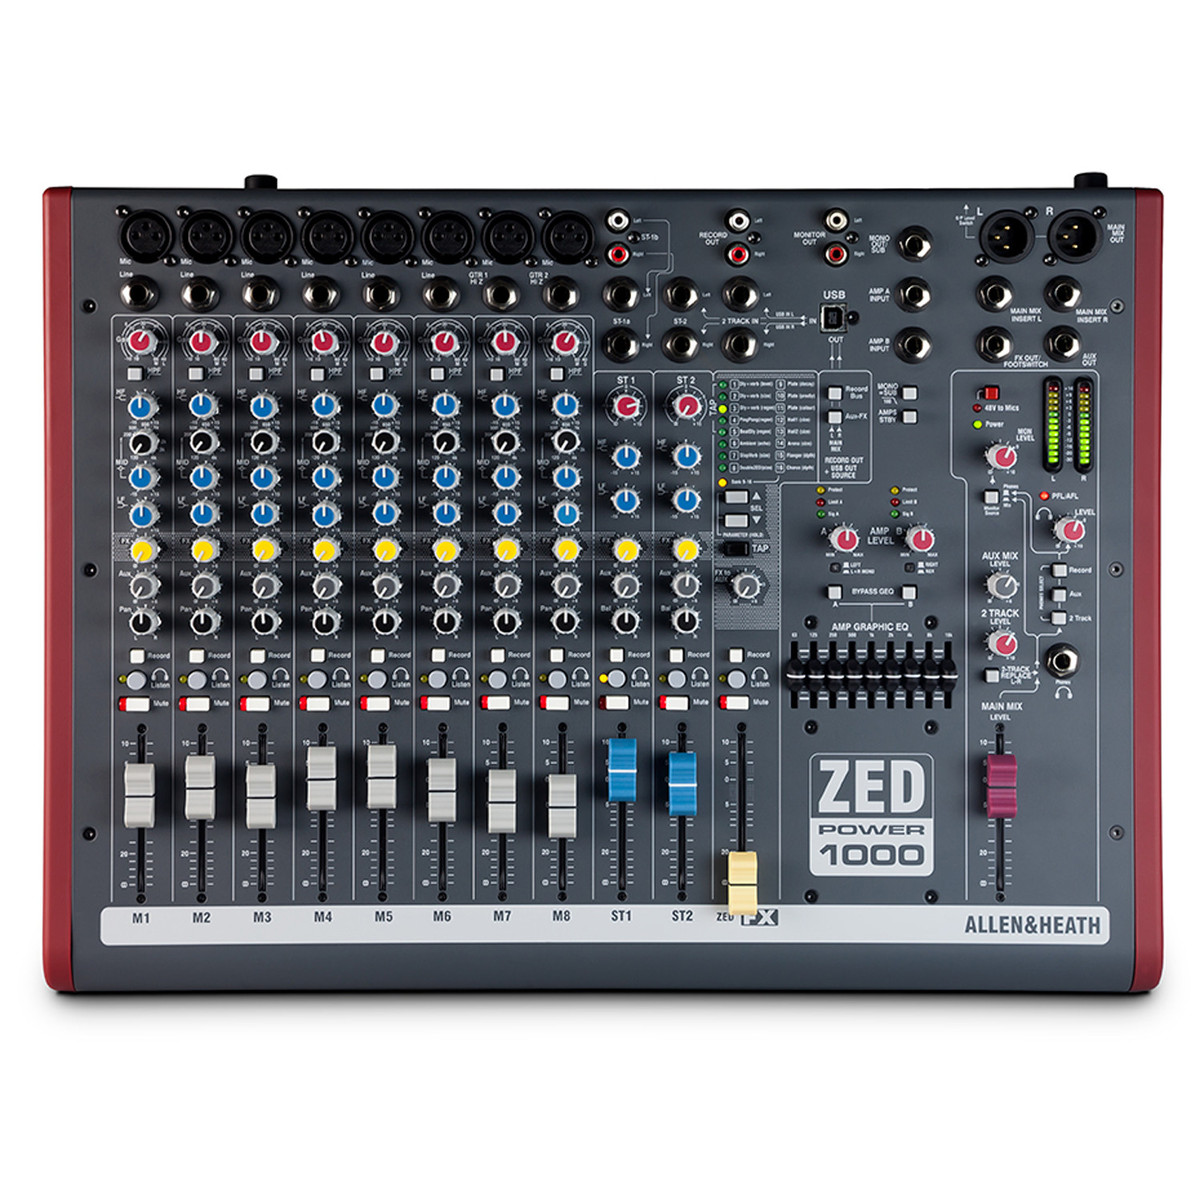 Image of Allen and Heath ZED Power 1000 Mixer